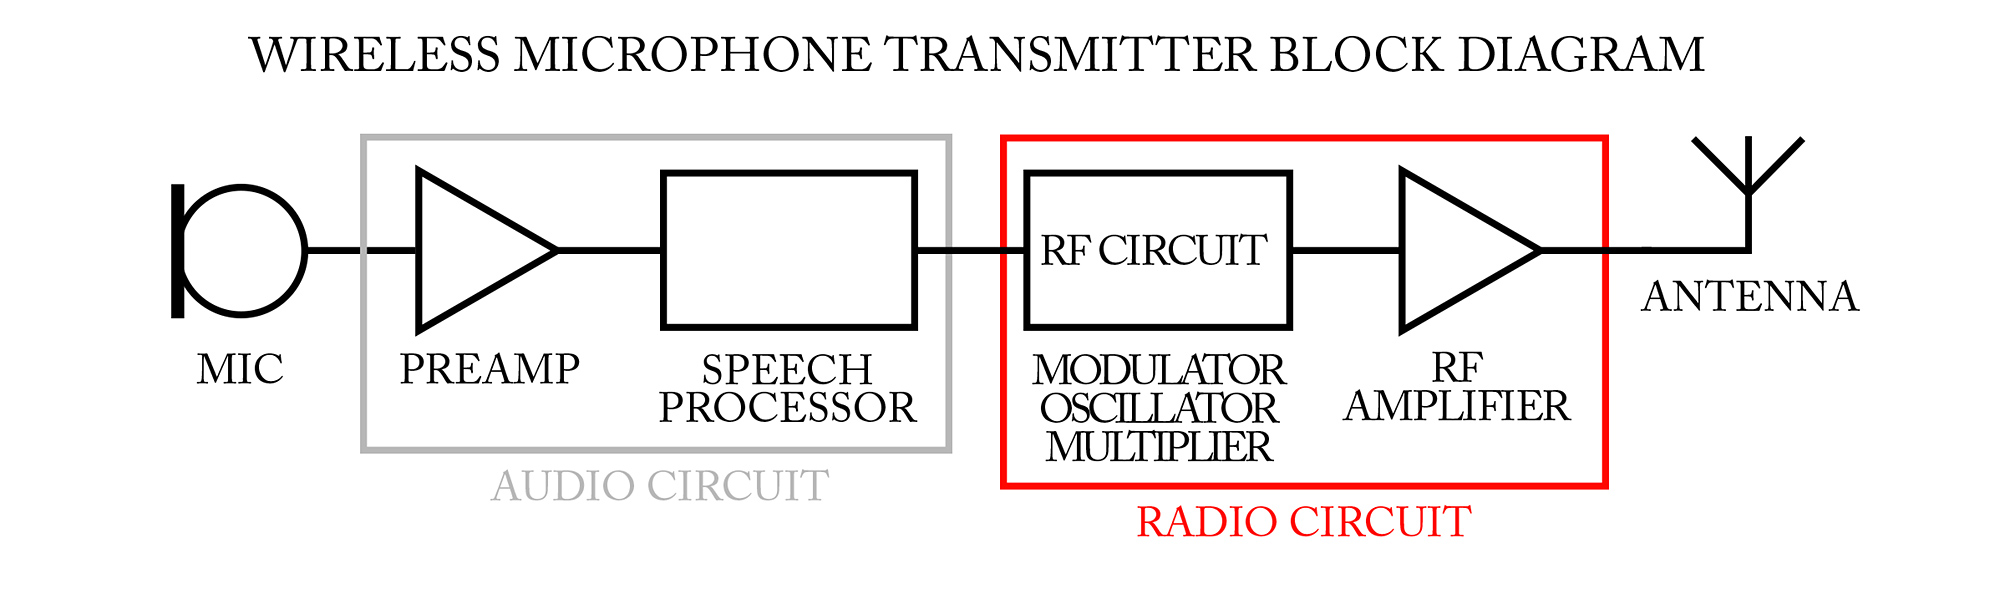 hight resolution of wireless microphone frequency selectionwireless microphone frequency selection wireless microphone transmitter block diagram